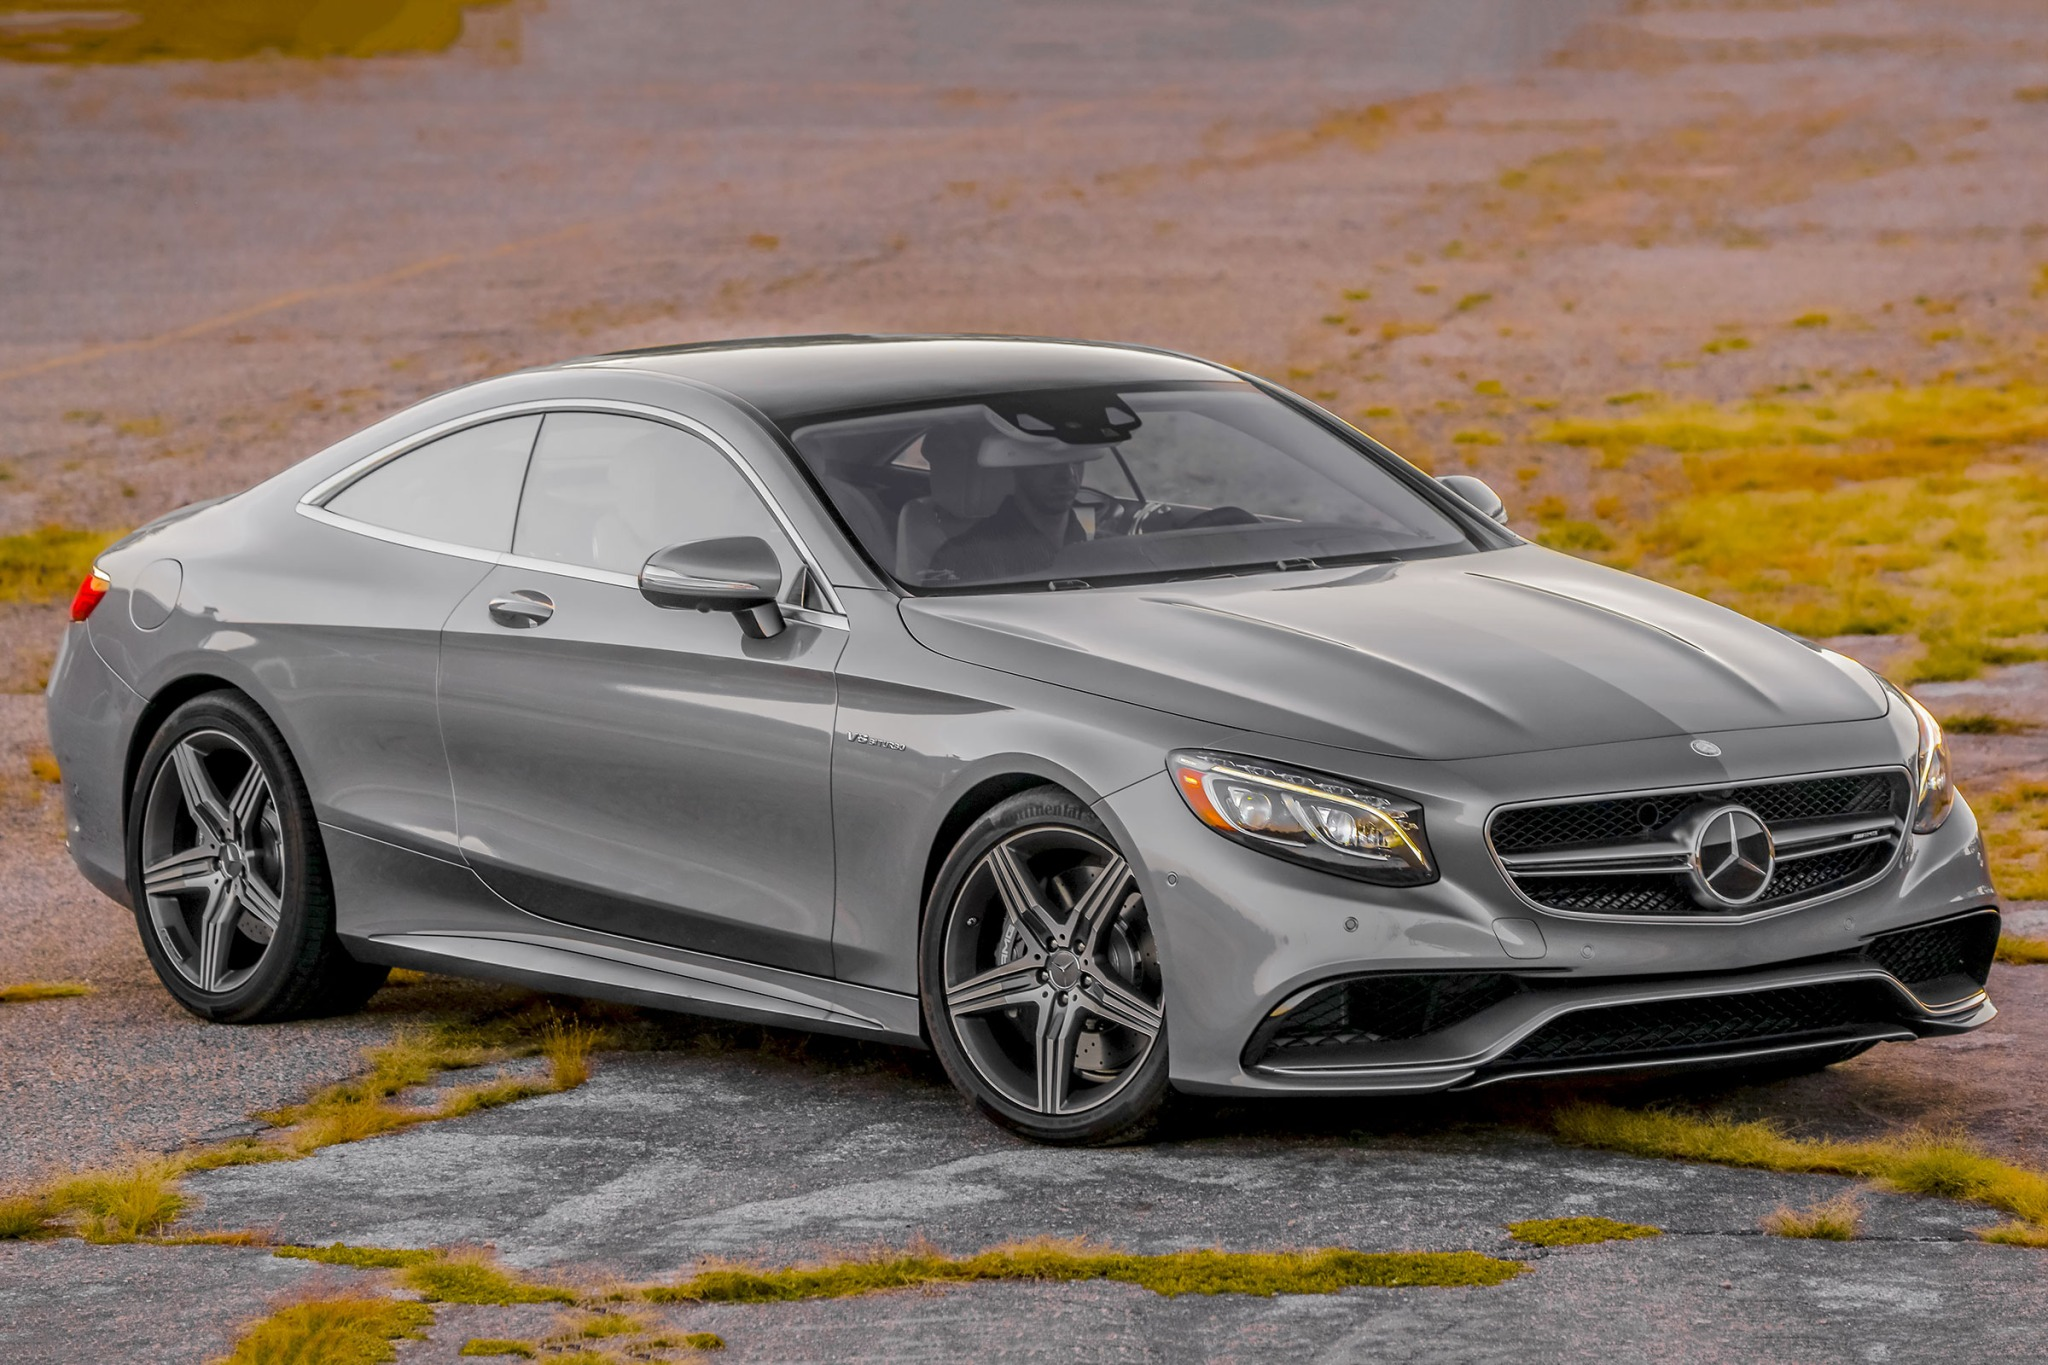 2017 mercedes benz s63 amg coupe car photos catalog 2018